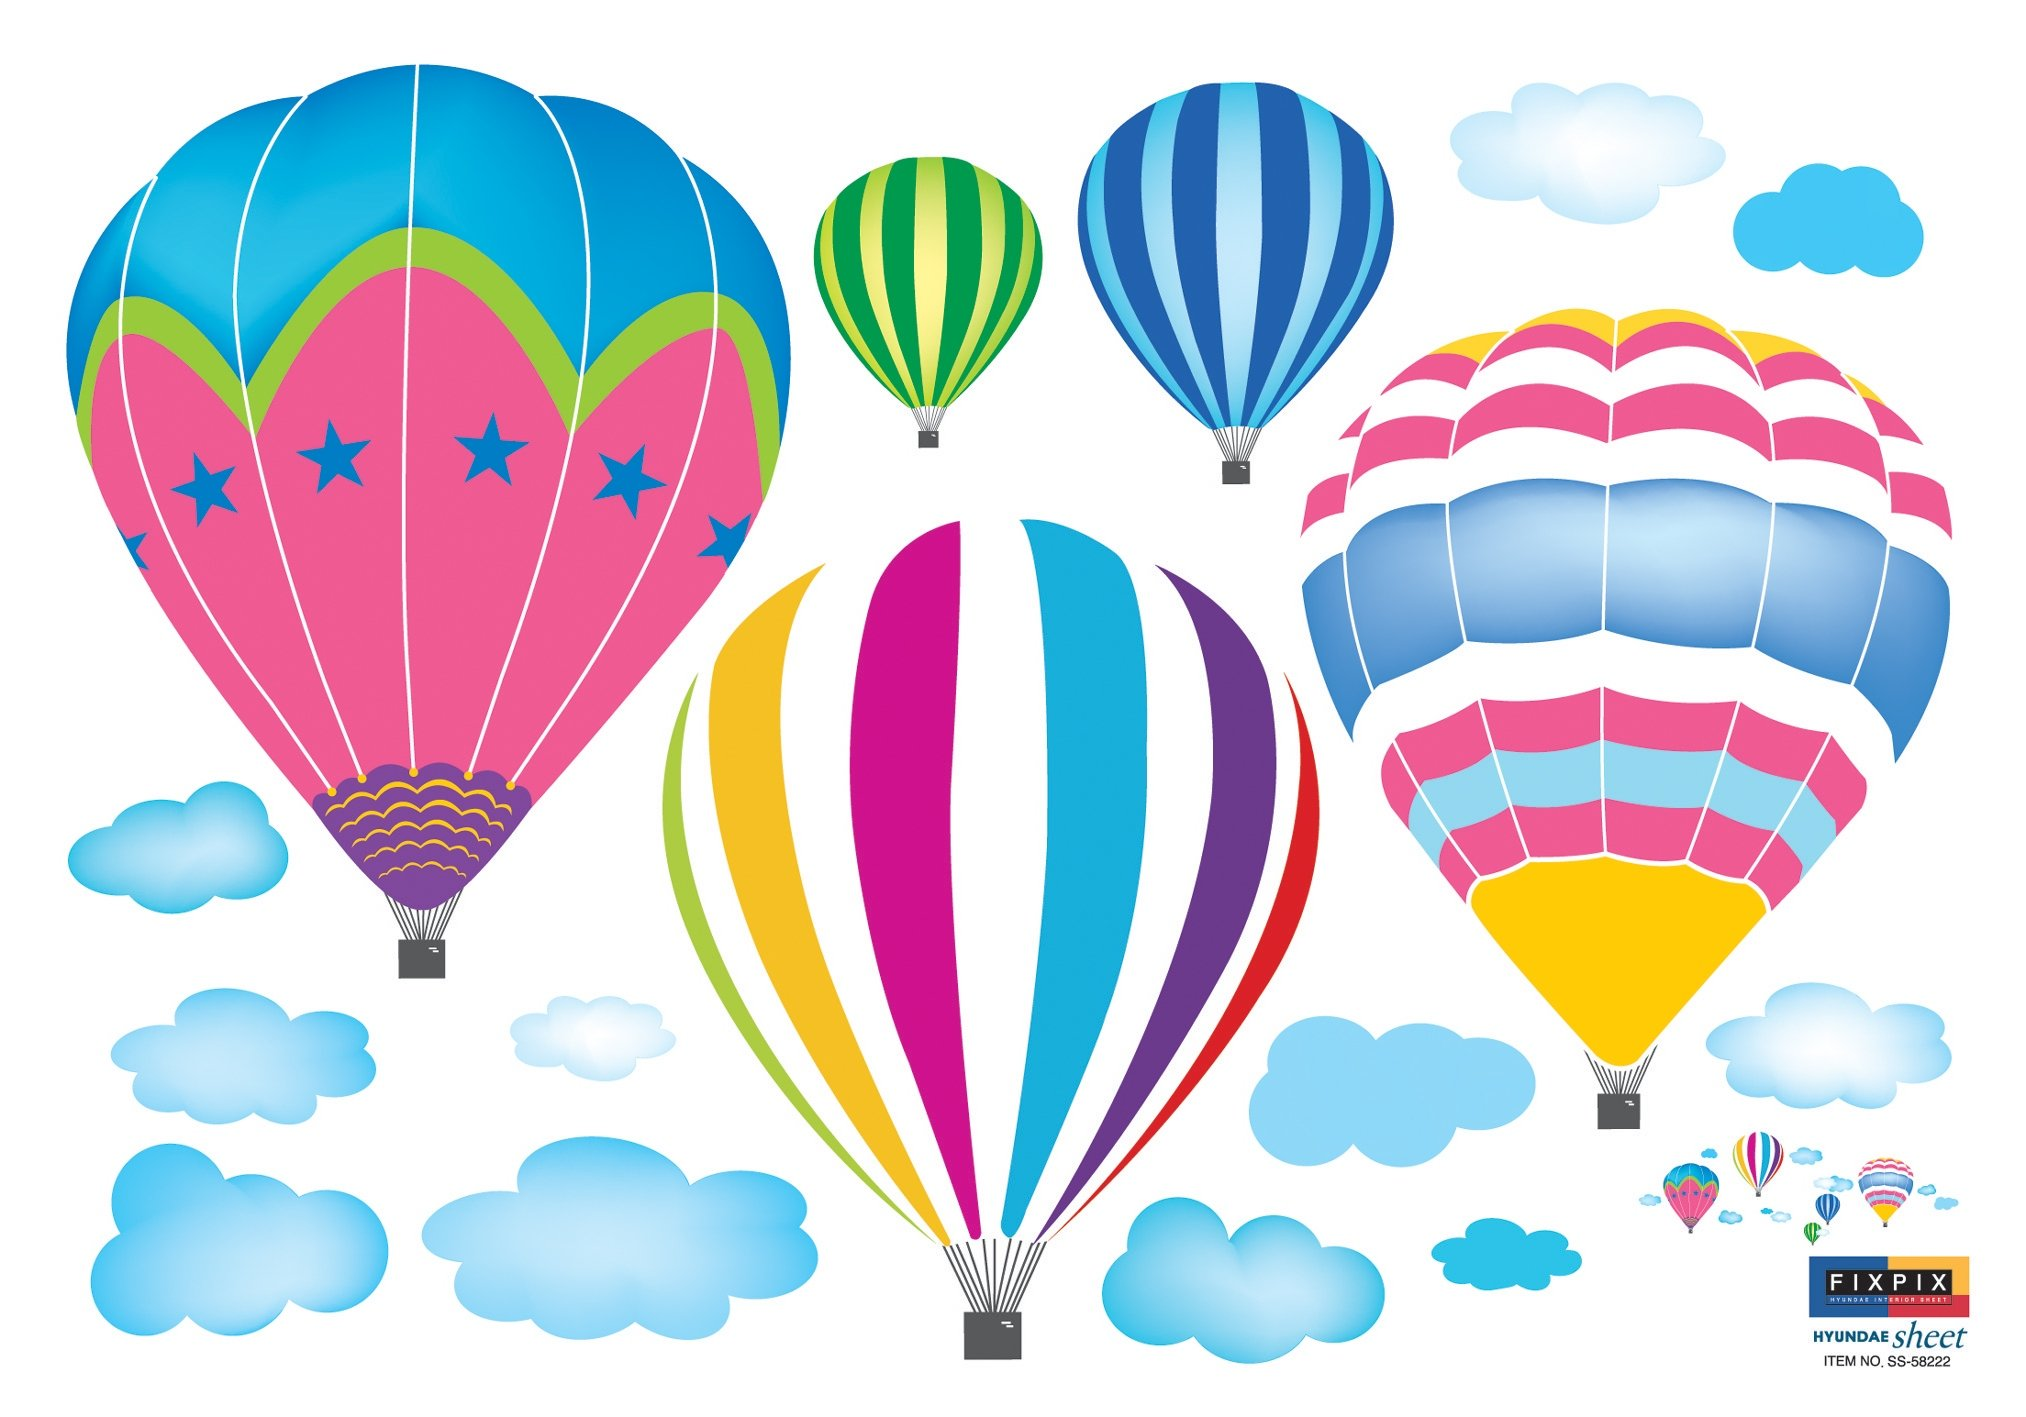 Ryuan colorful hot air balloon in the sky for Sticker deco